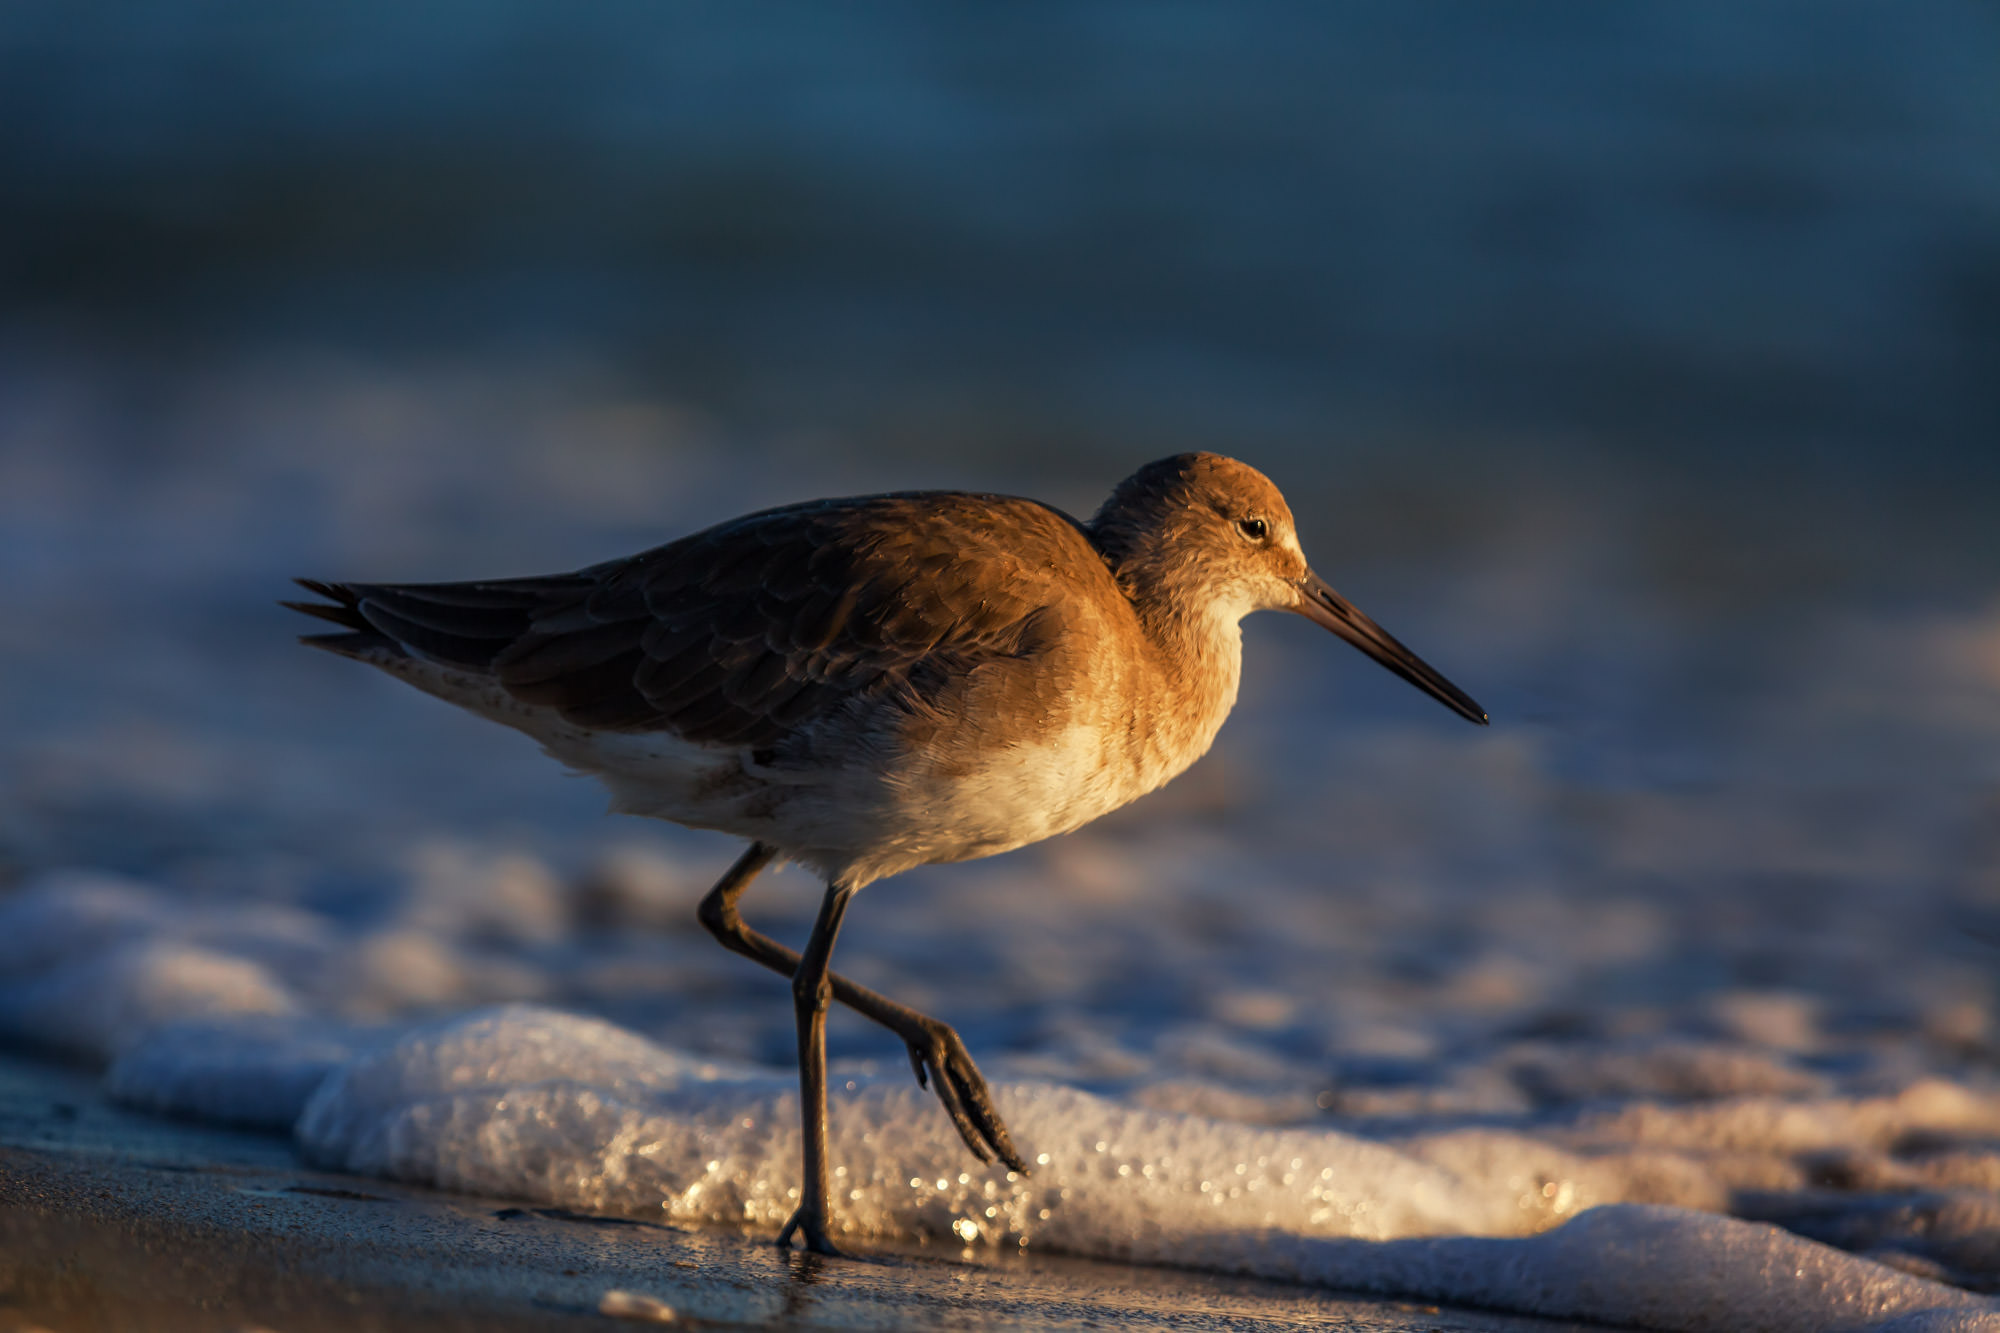 Willet, Florida, beach, limited edition, photograph, photo